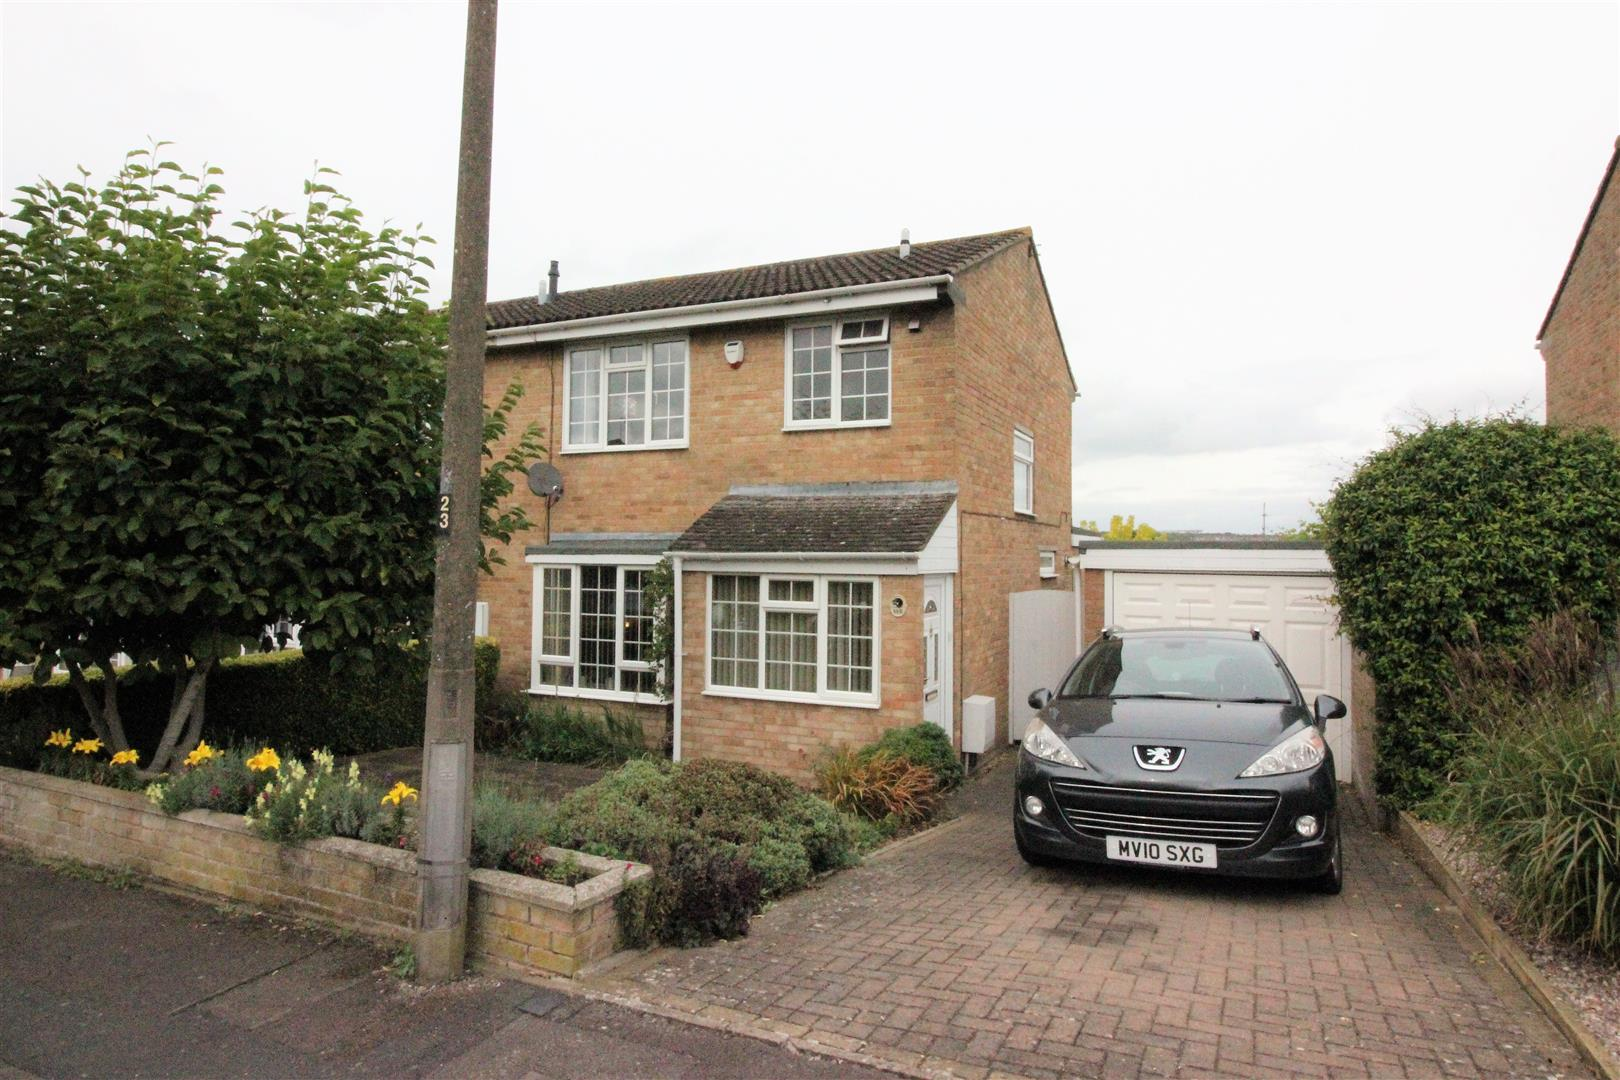 3 Bedrooms End Of Terrace House for sale in Avonmead, Swindon